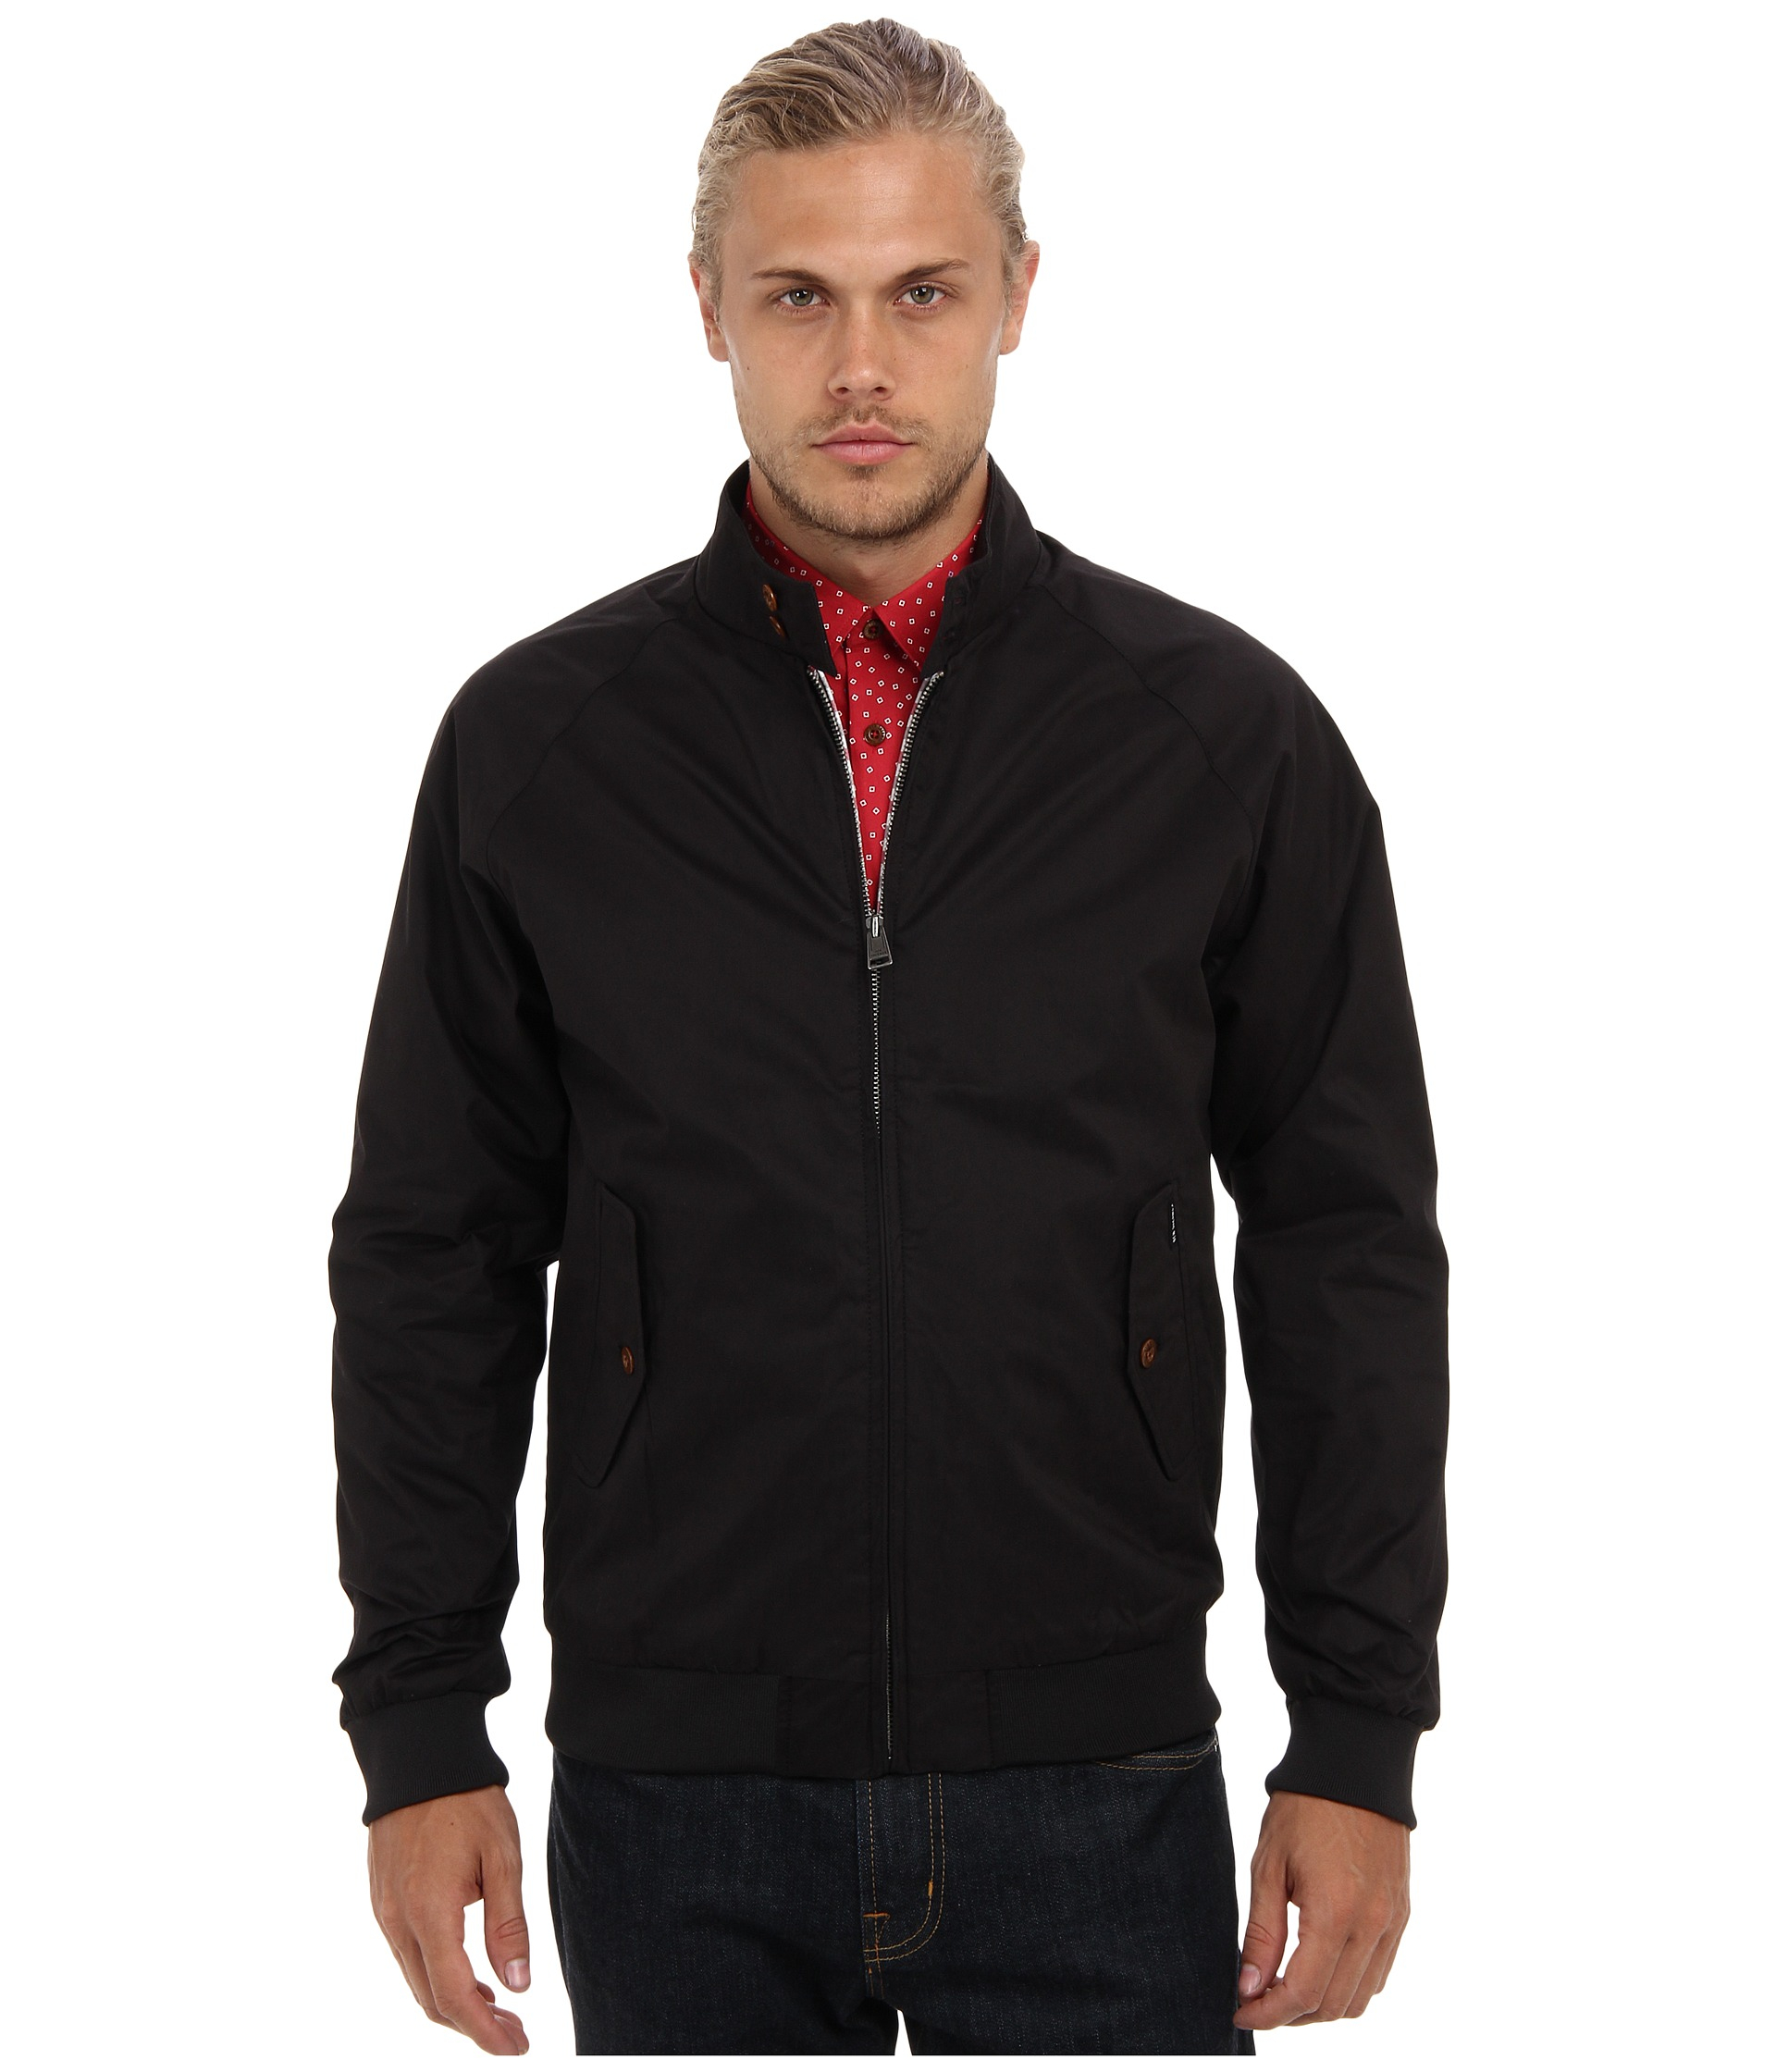 lyst ben sherman the original cotton harrington jacket in black for men. Black Bedroom Furniture Sets. Home Design Ideas